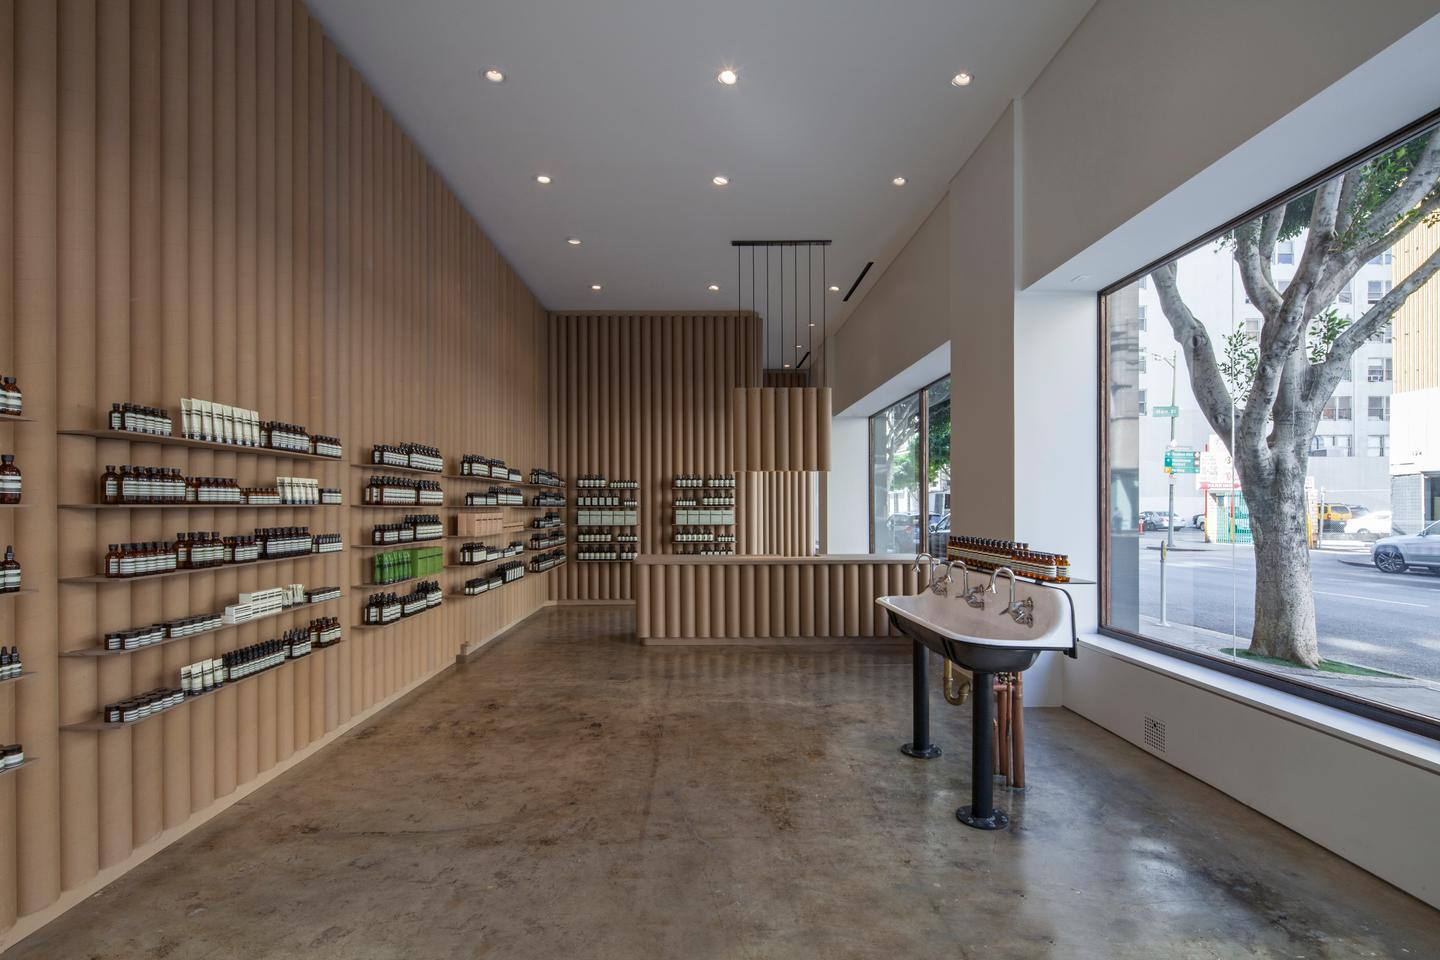 Aesop DTLA was designed by Brooks + Scarpa, and is located in Los Angeles, California